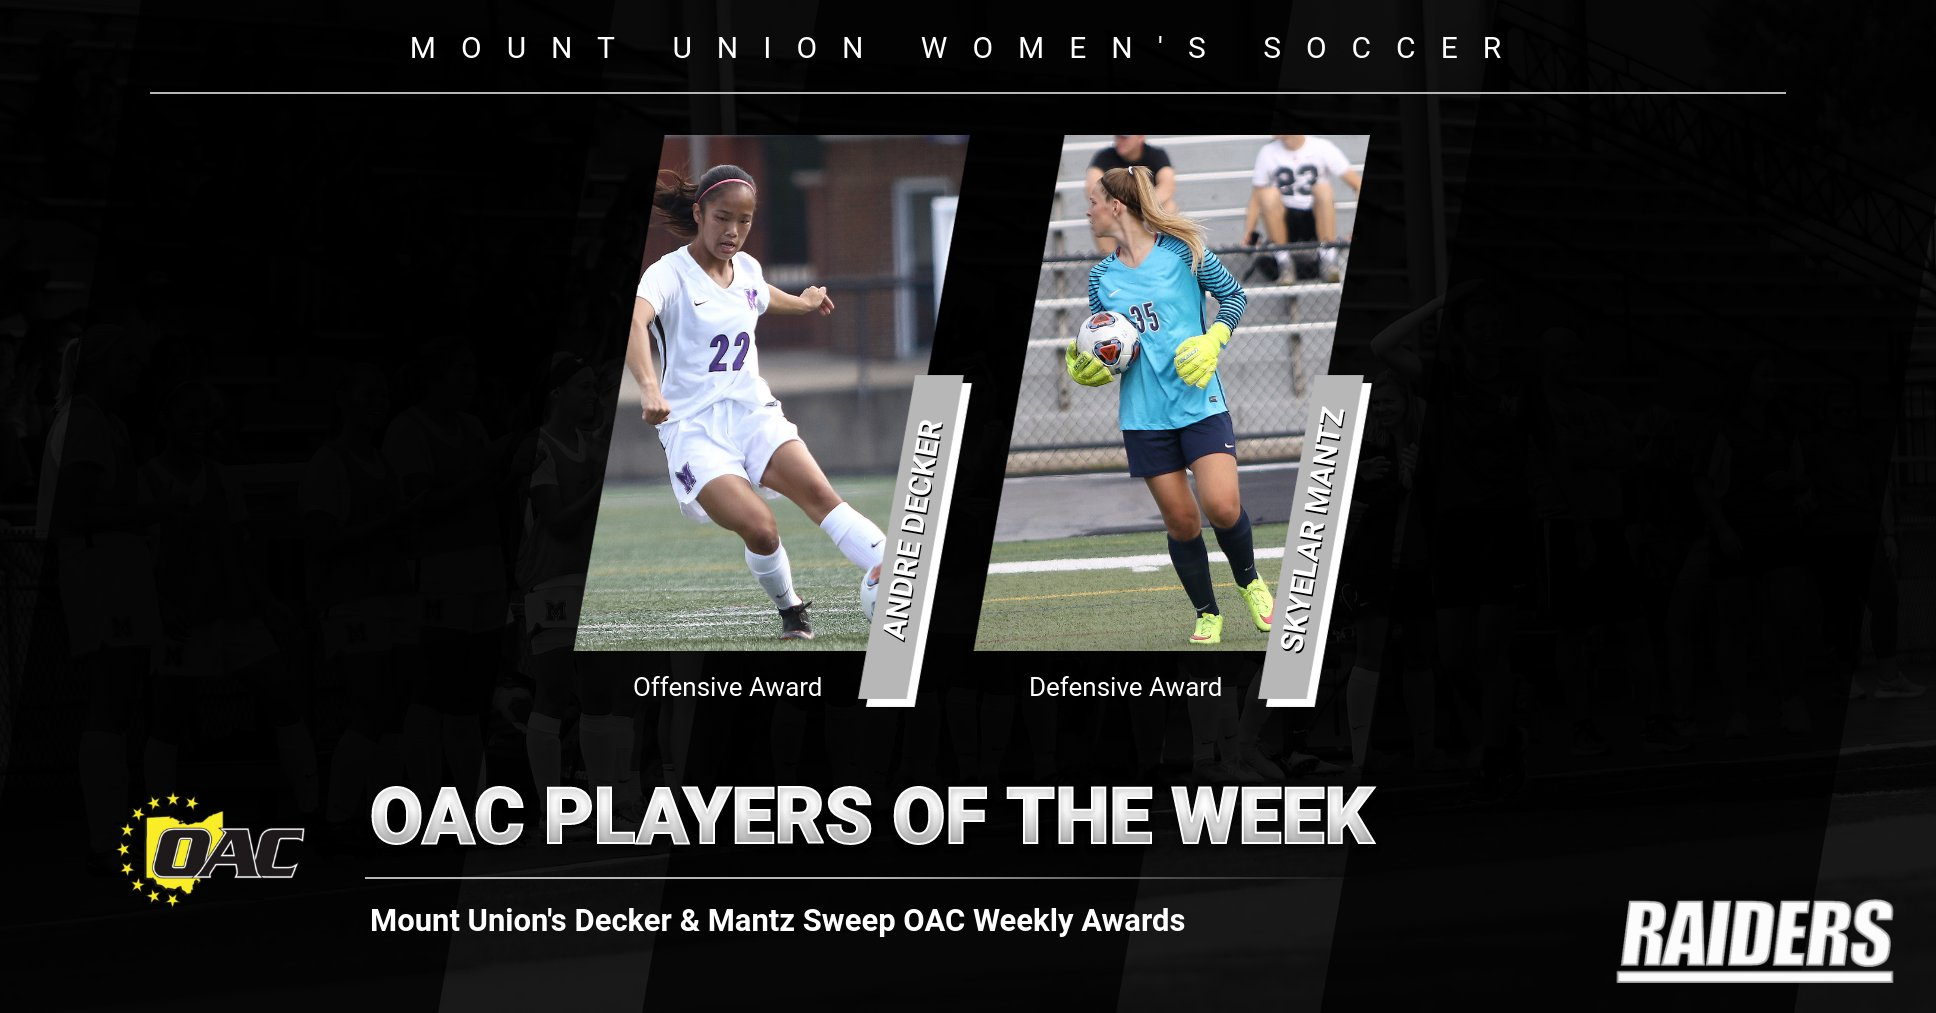 Mount Union's Mantz and Decker Sweep OAC Weekly Awards